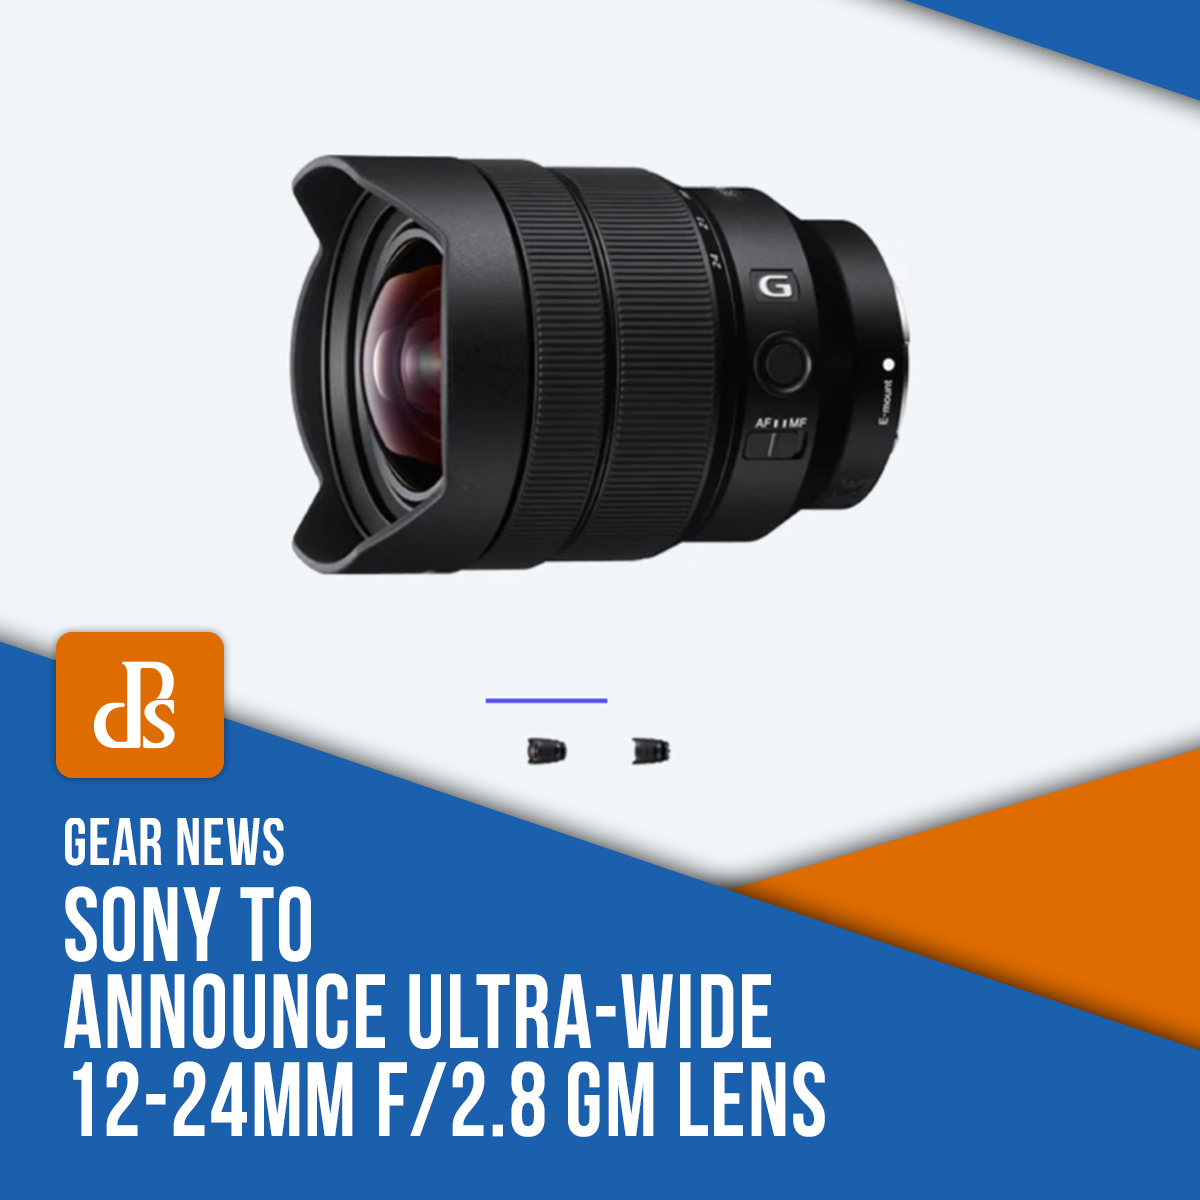 dps Sony 12-24mm f/2.8 announcement